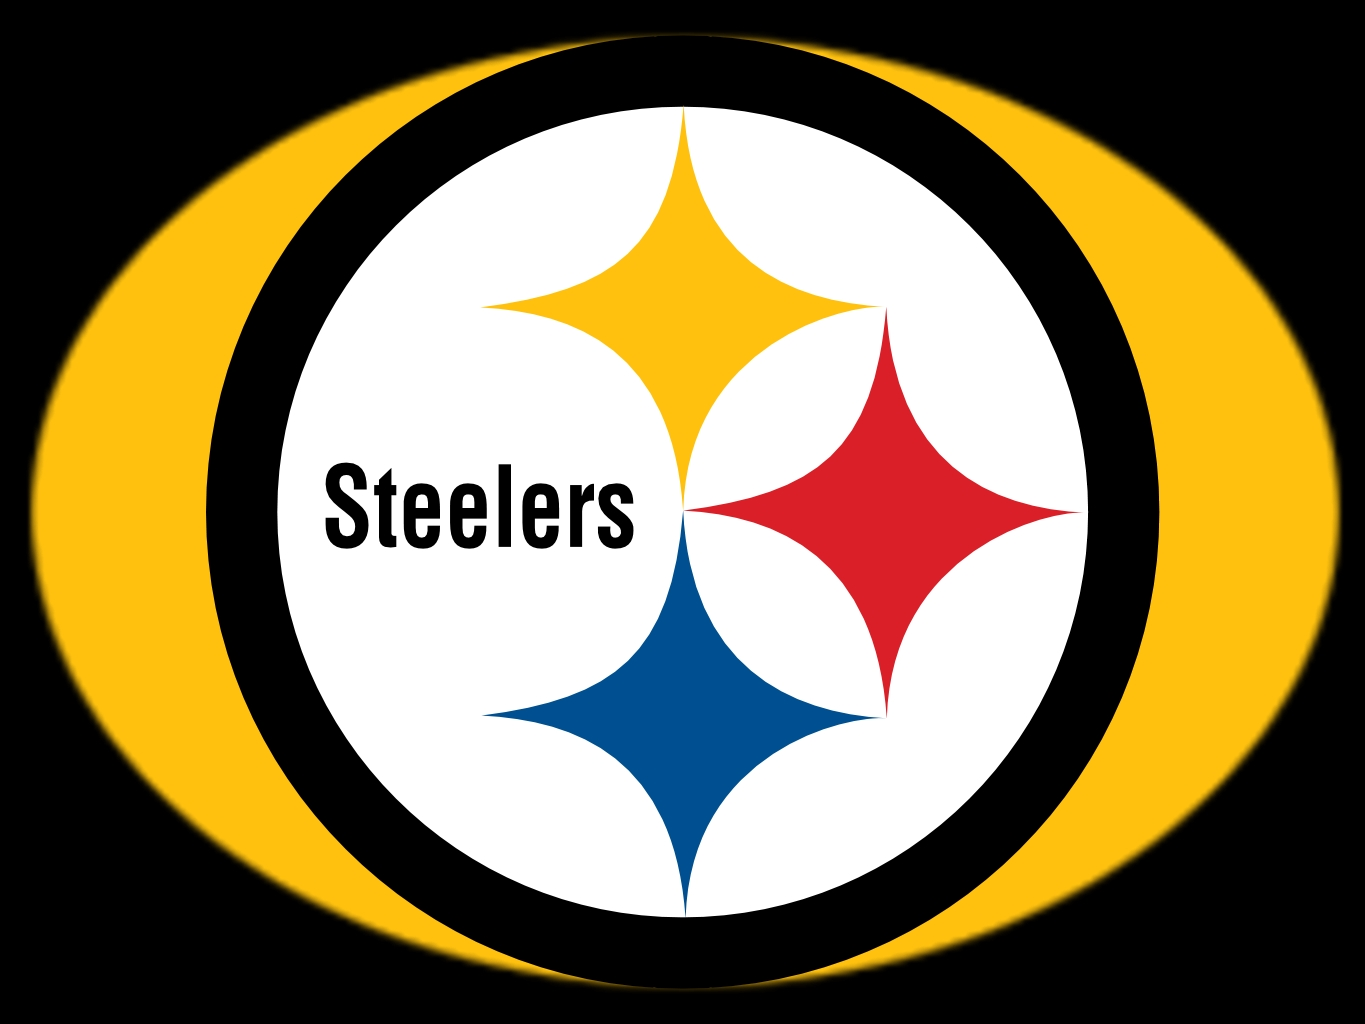 NFL Team Logos   Photo 319 of 416 phombocom 1365x1024